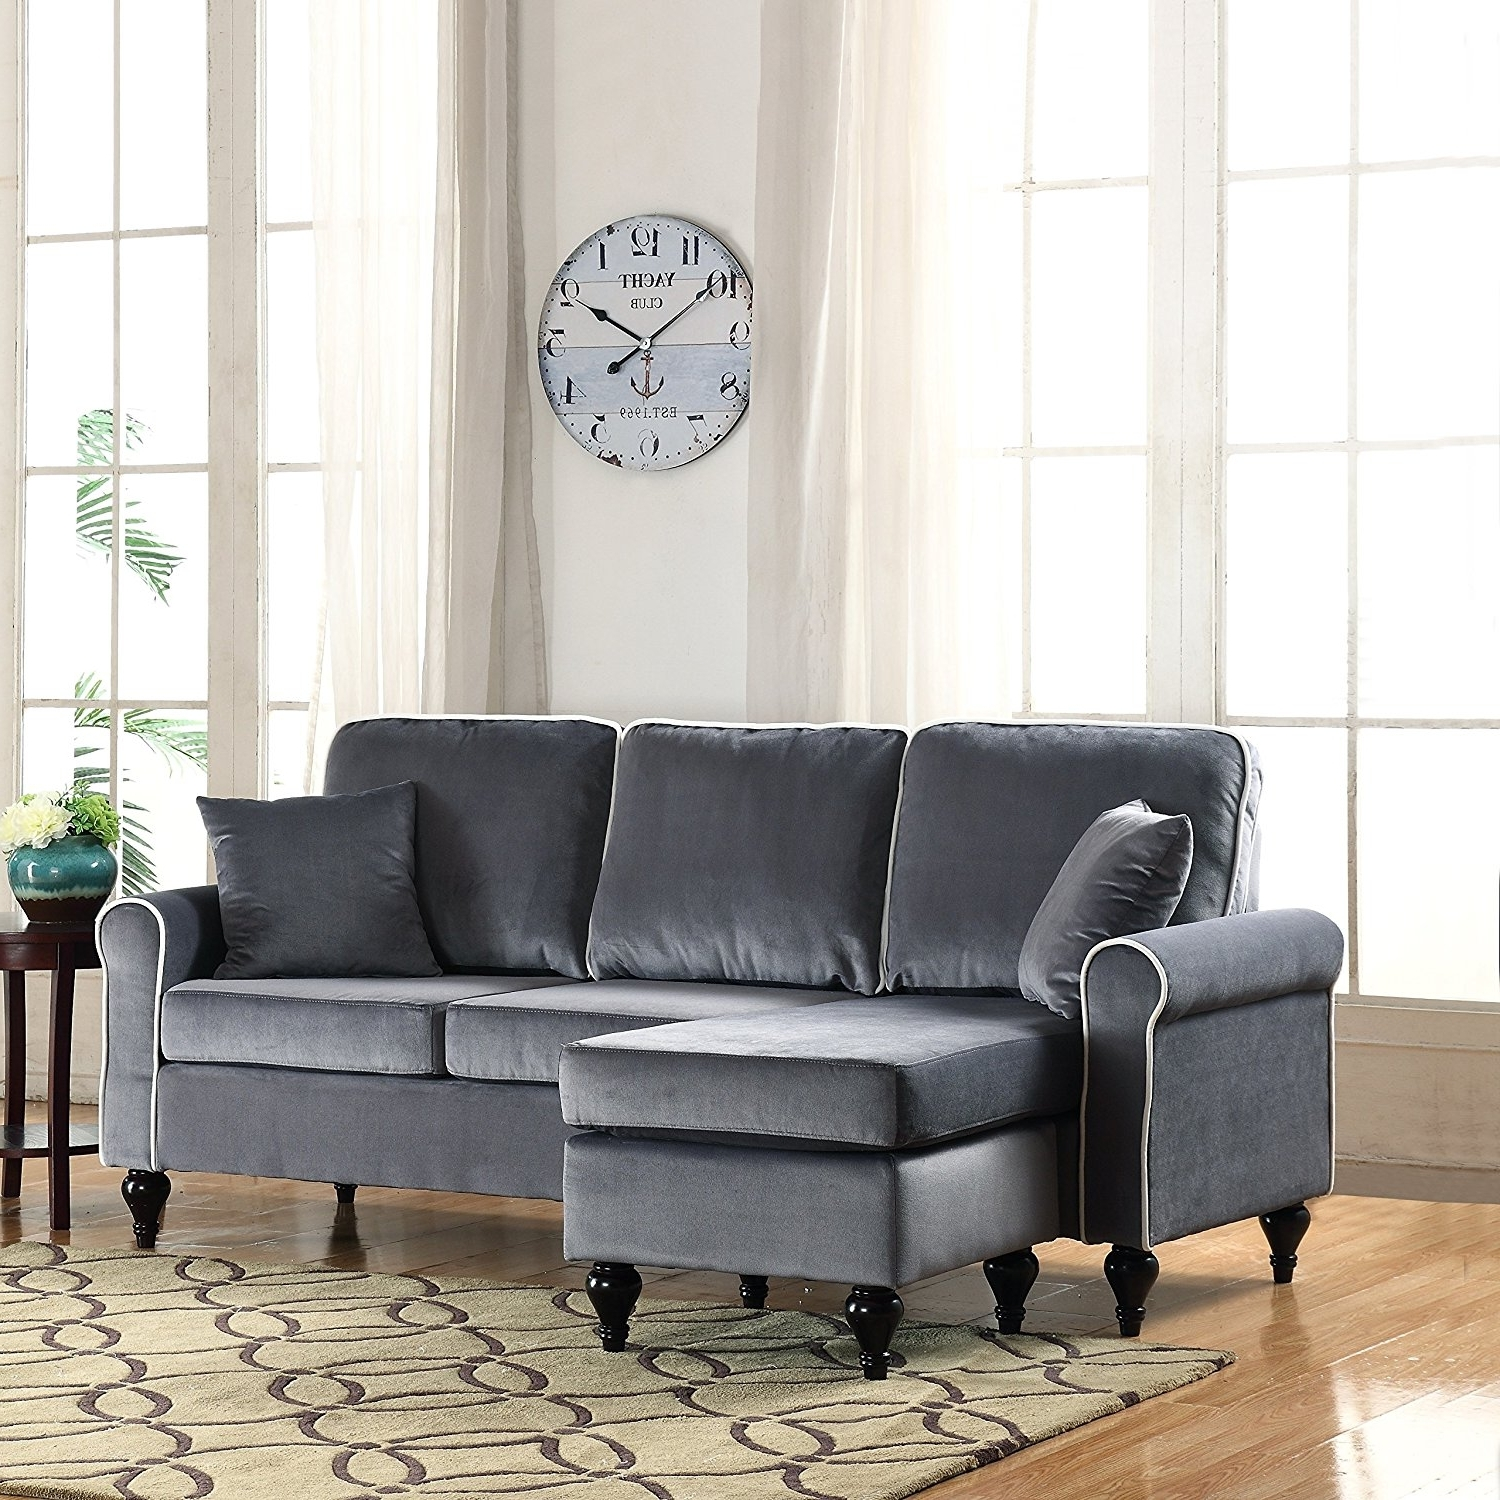 2017 Amazon: Classic And Traditional Small Space Velvet Sectional In Reversible Chaise Sofas (View 3 of 15)